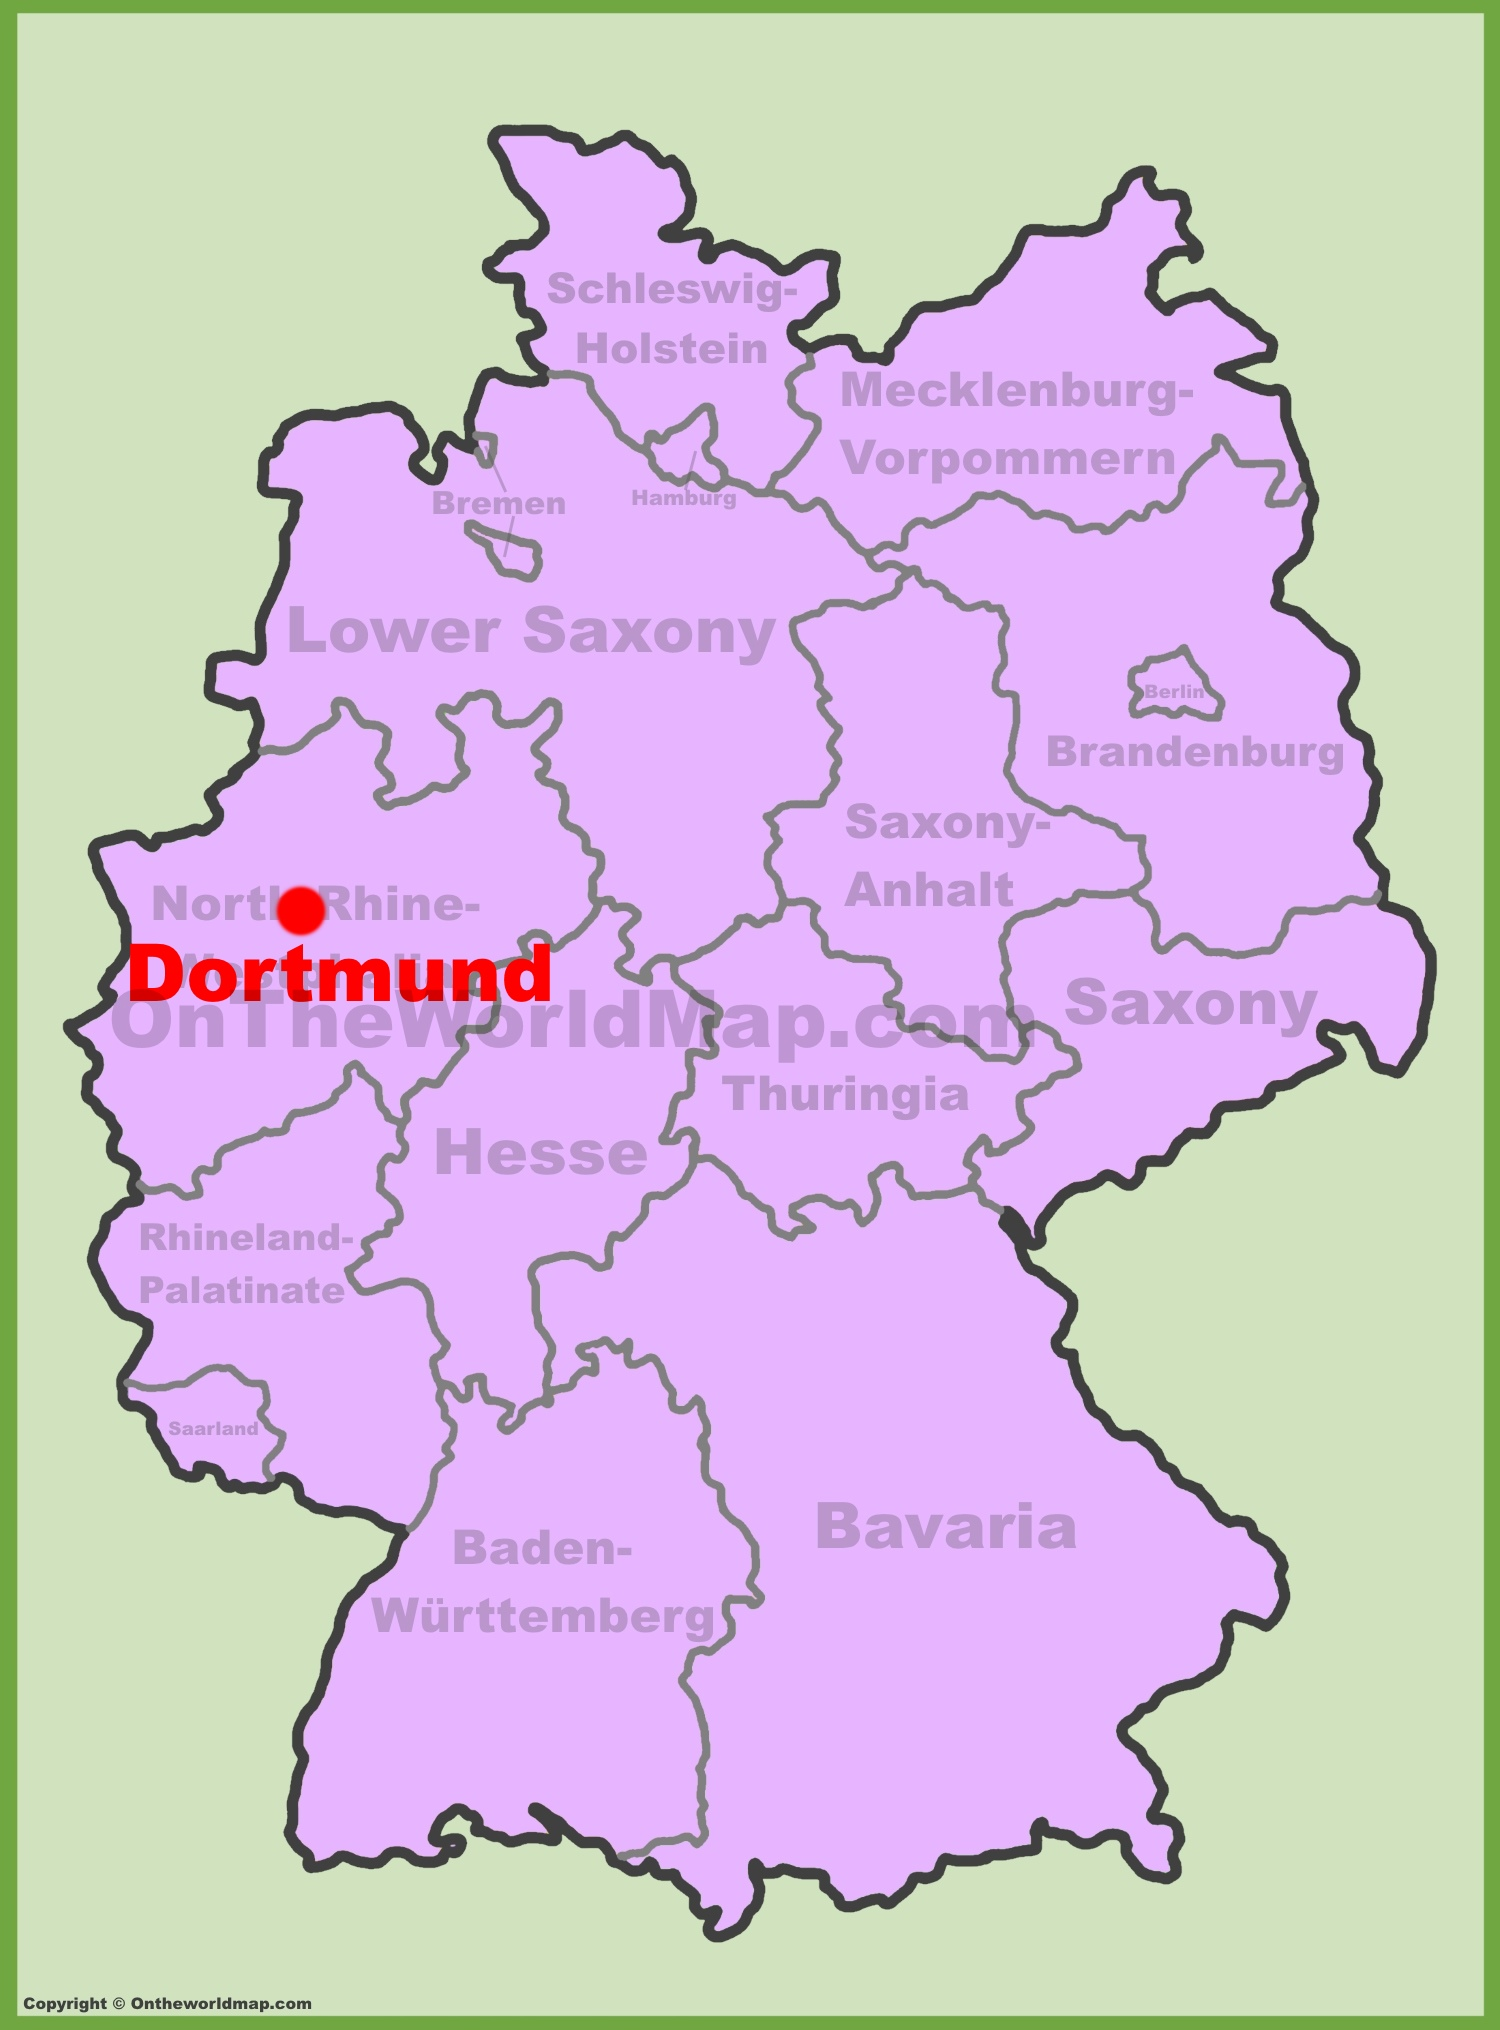 Dortmund Location On The Germany Map - Germany map dortmund